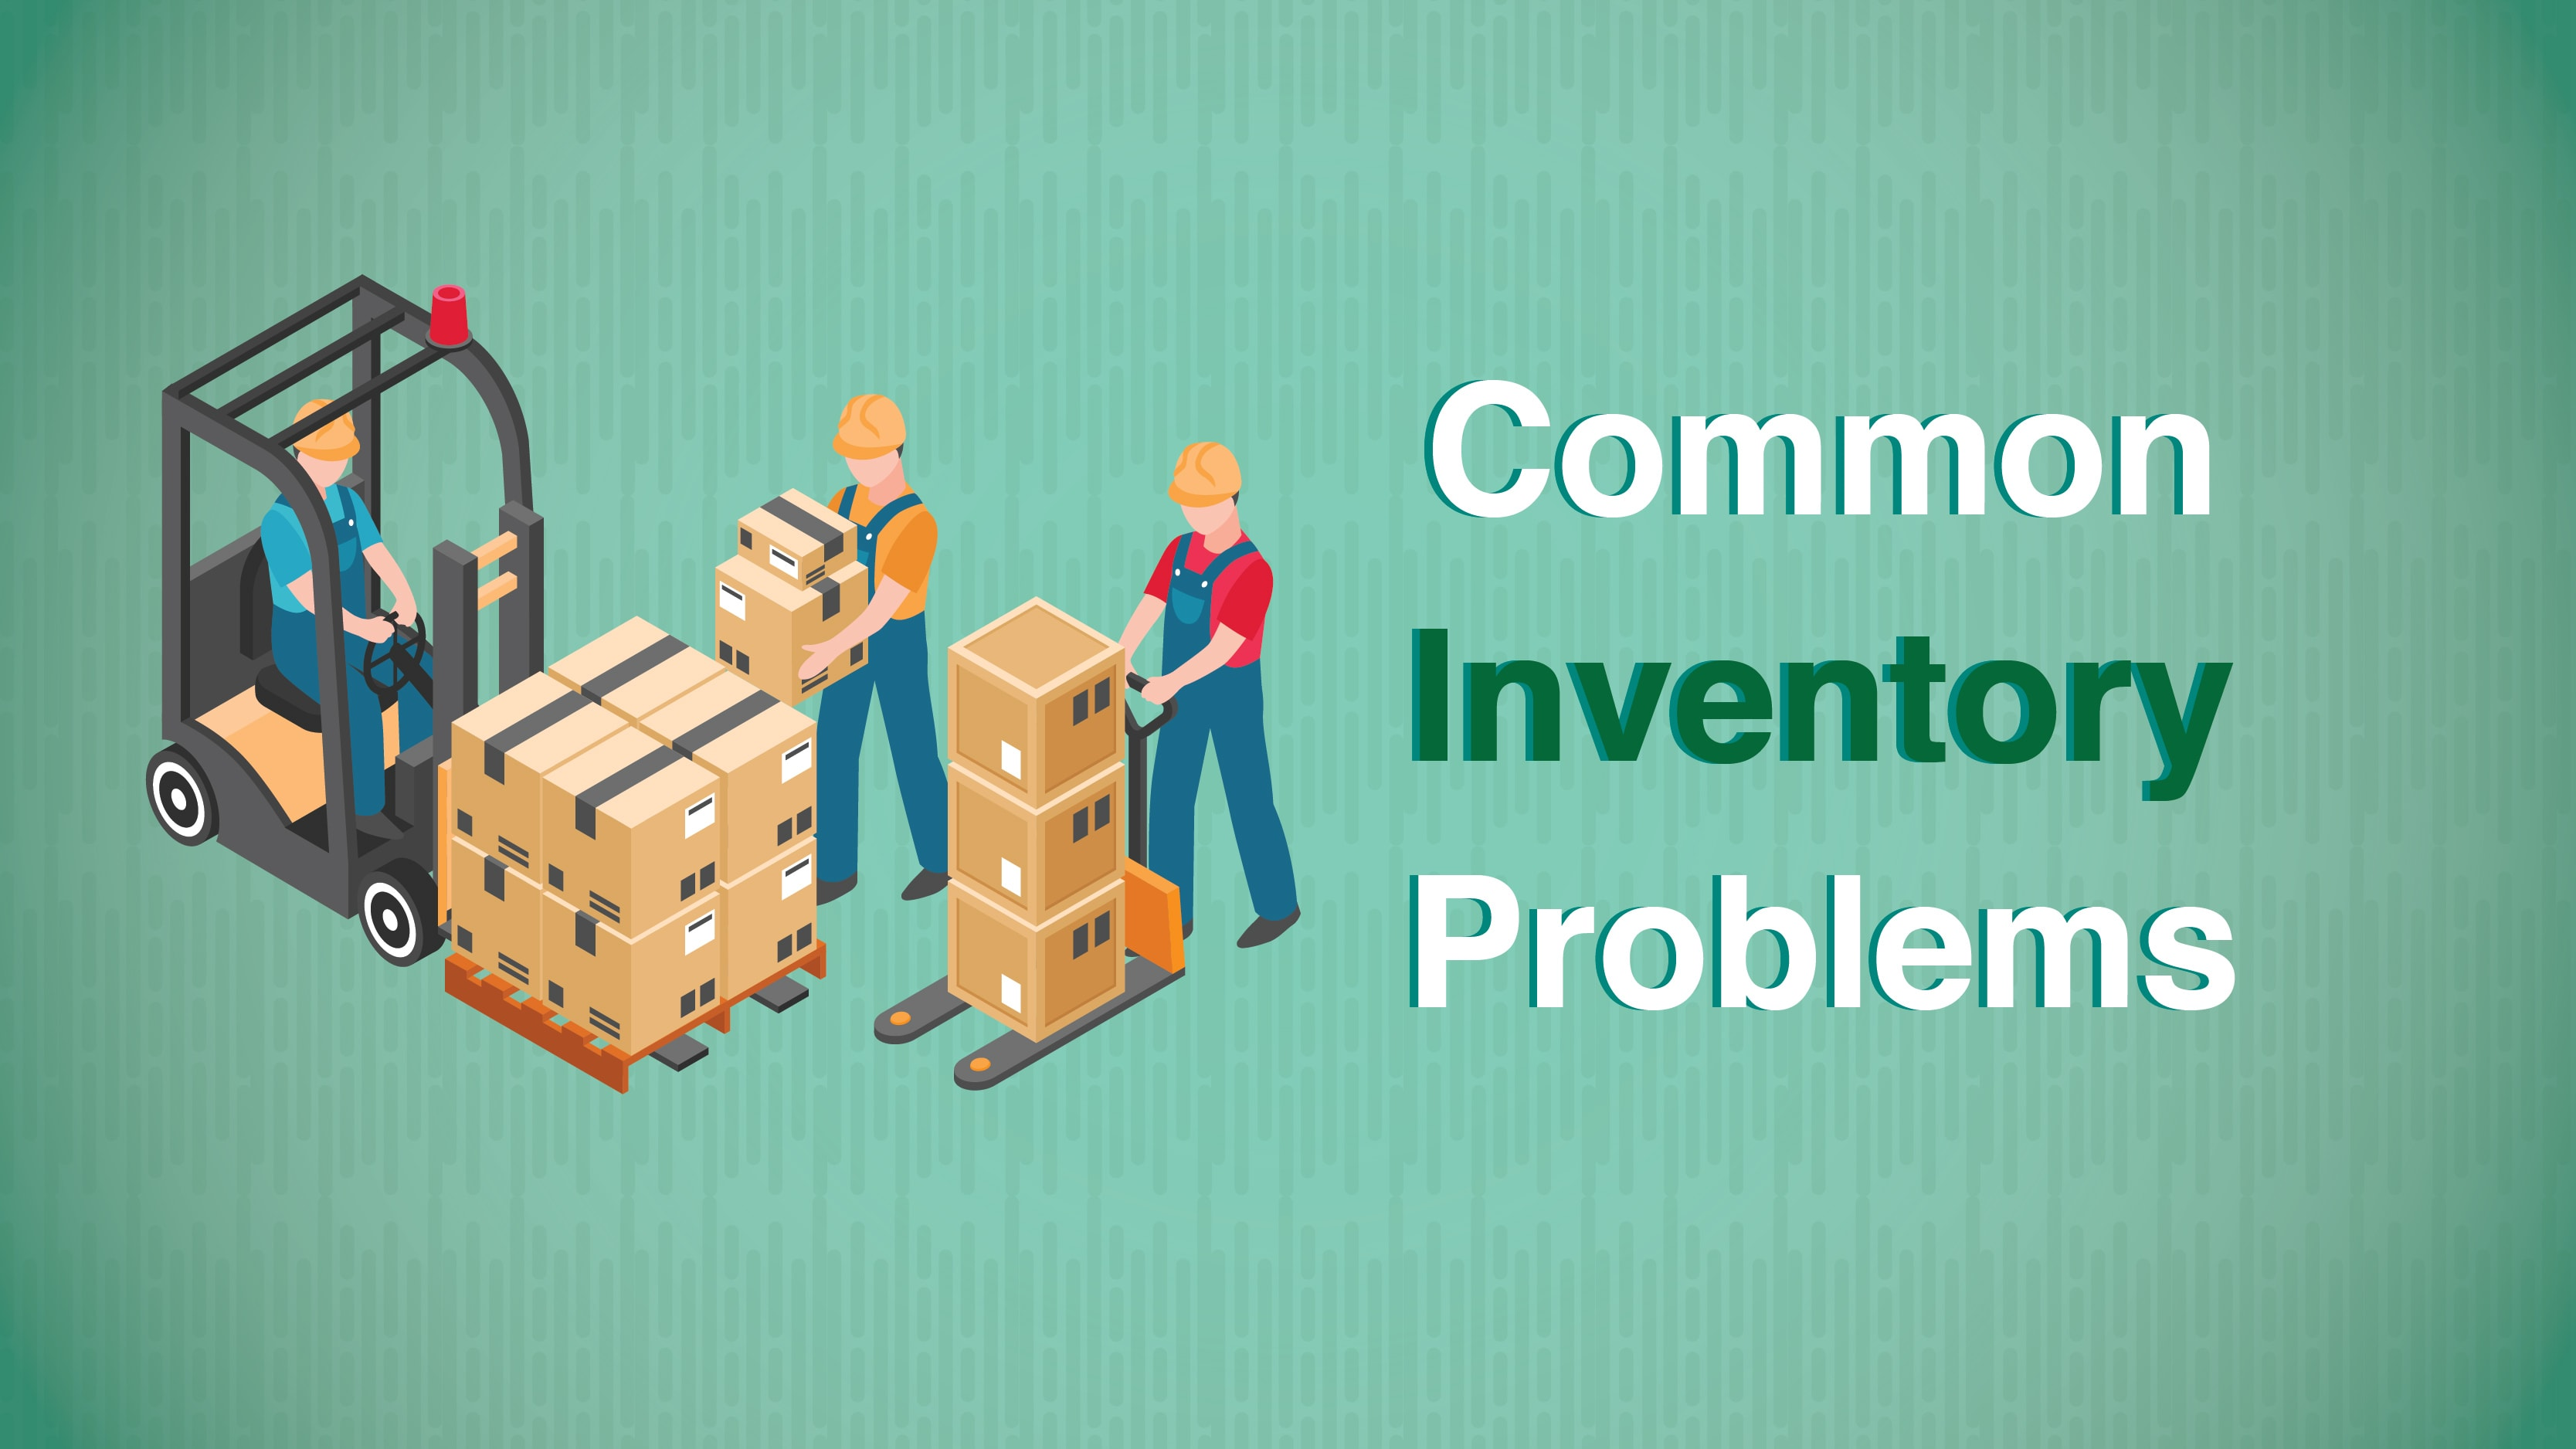 Common Inventory Problems